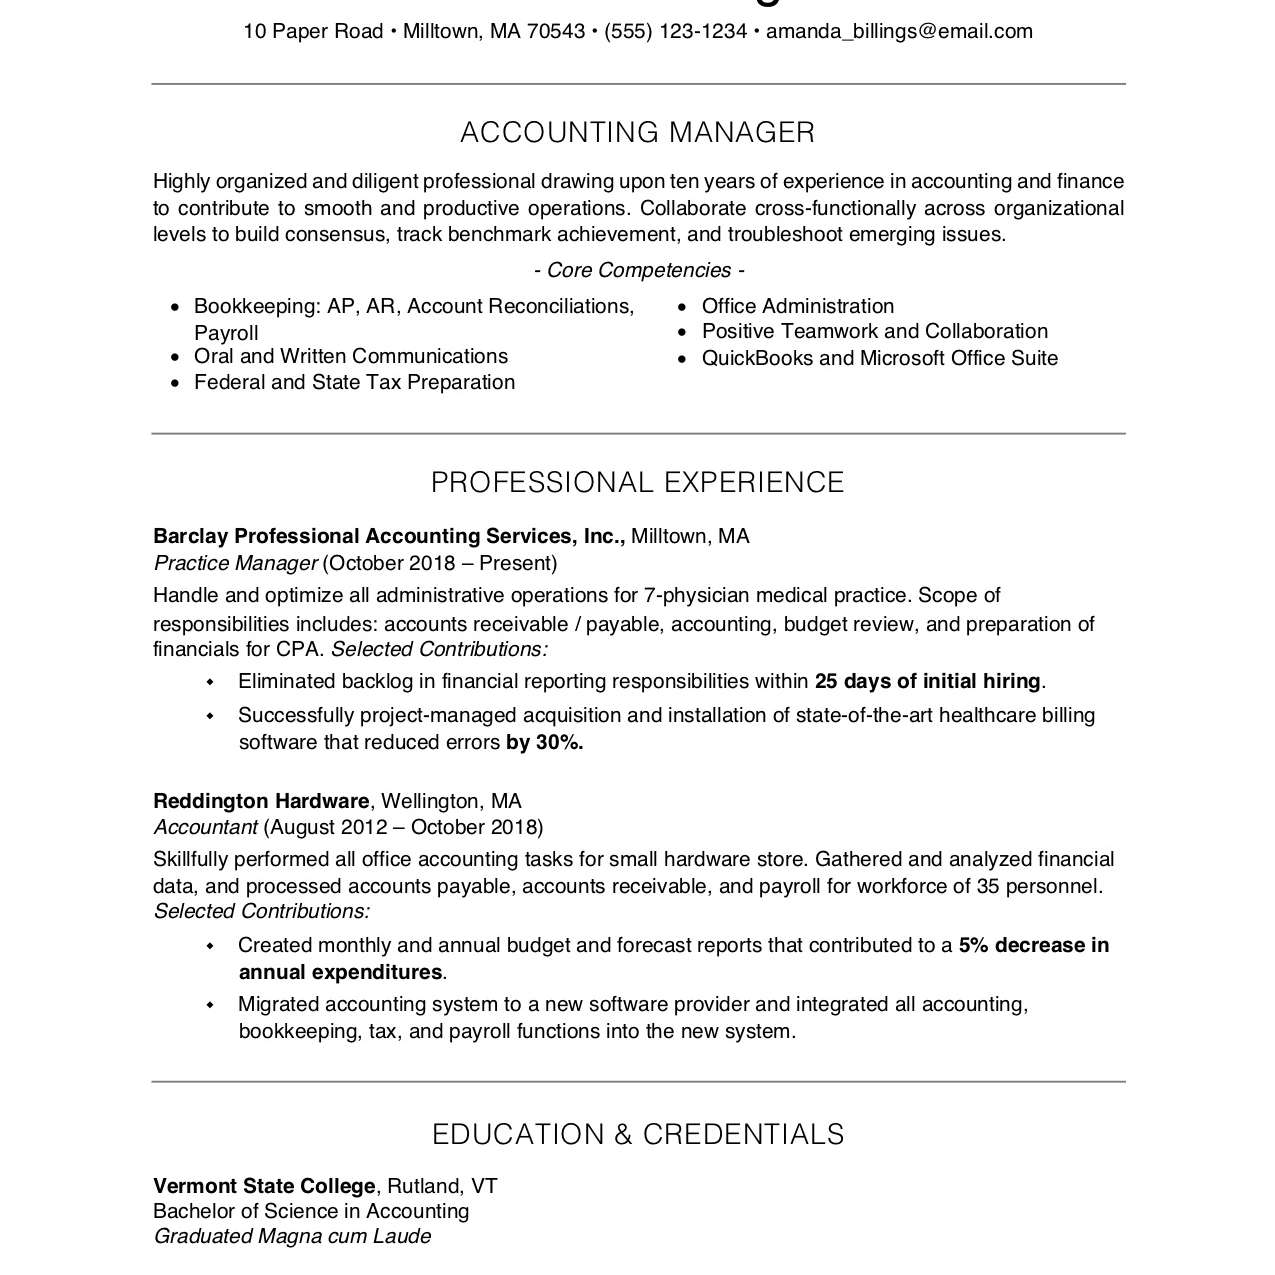 free professional resume examples and writing tips work experience template 2063596res1 Resume Work Experience Resume Template